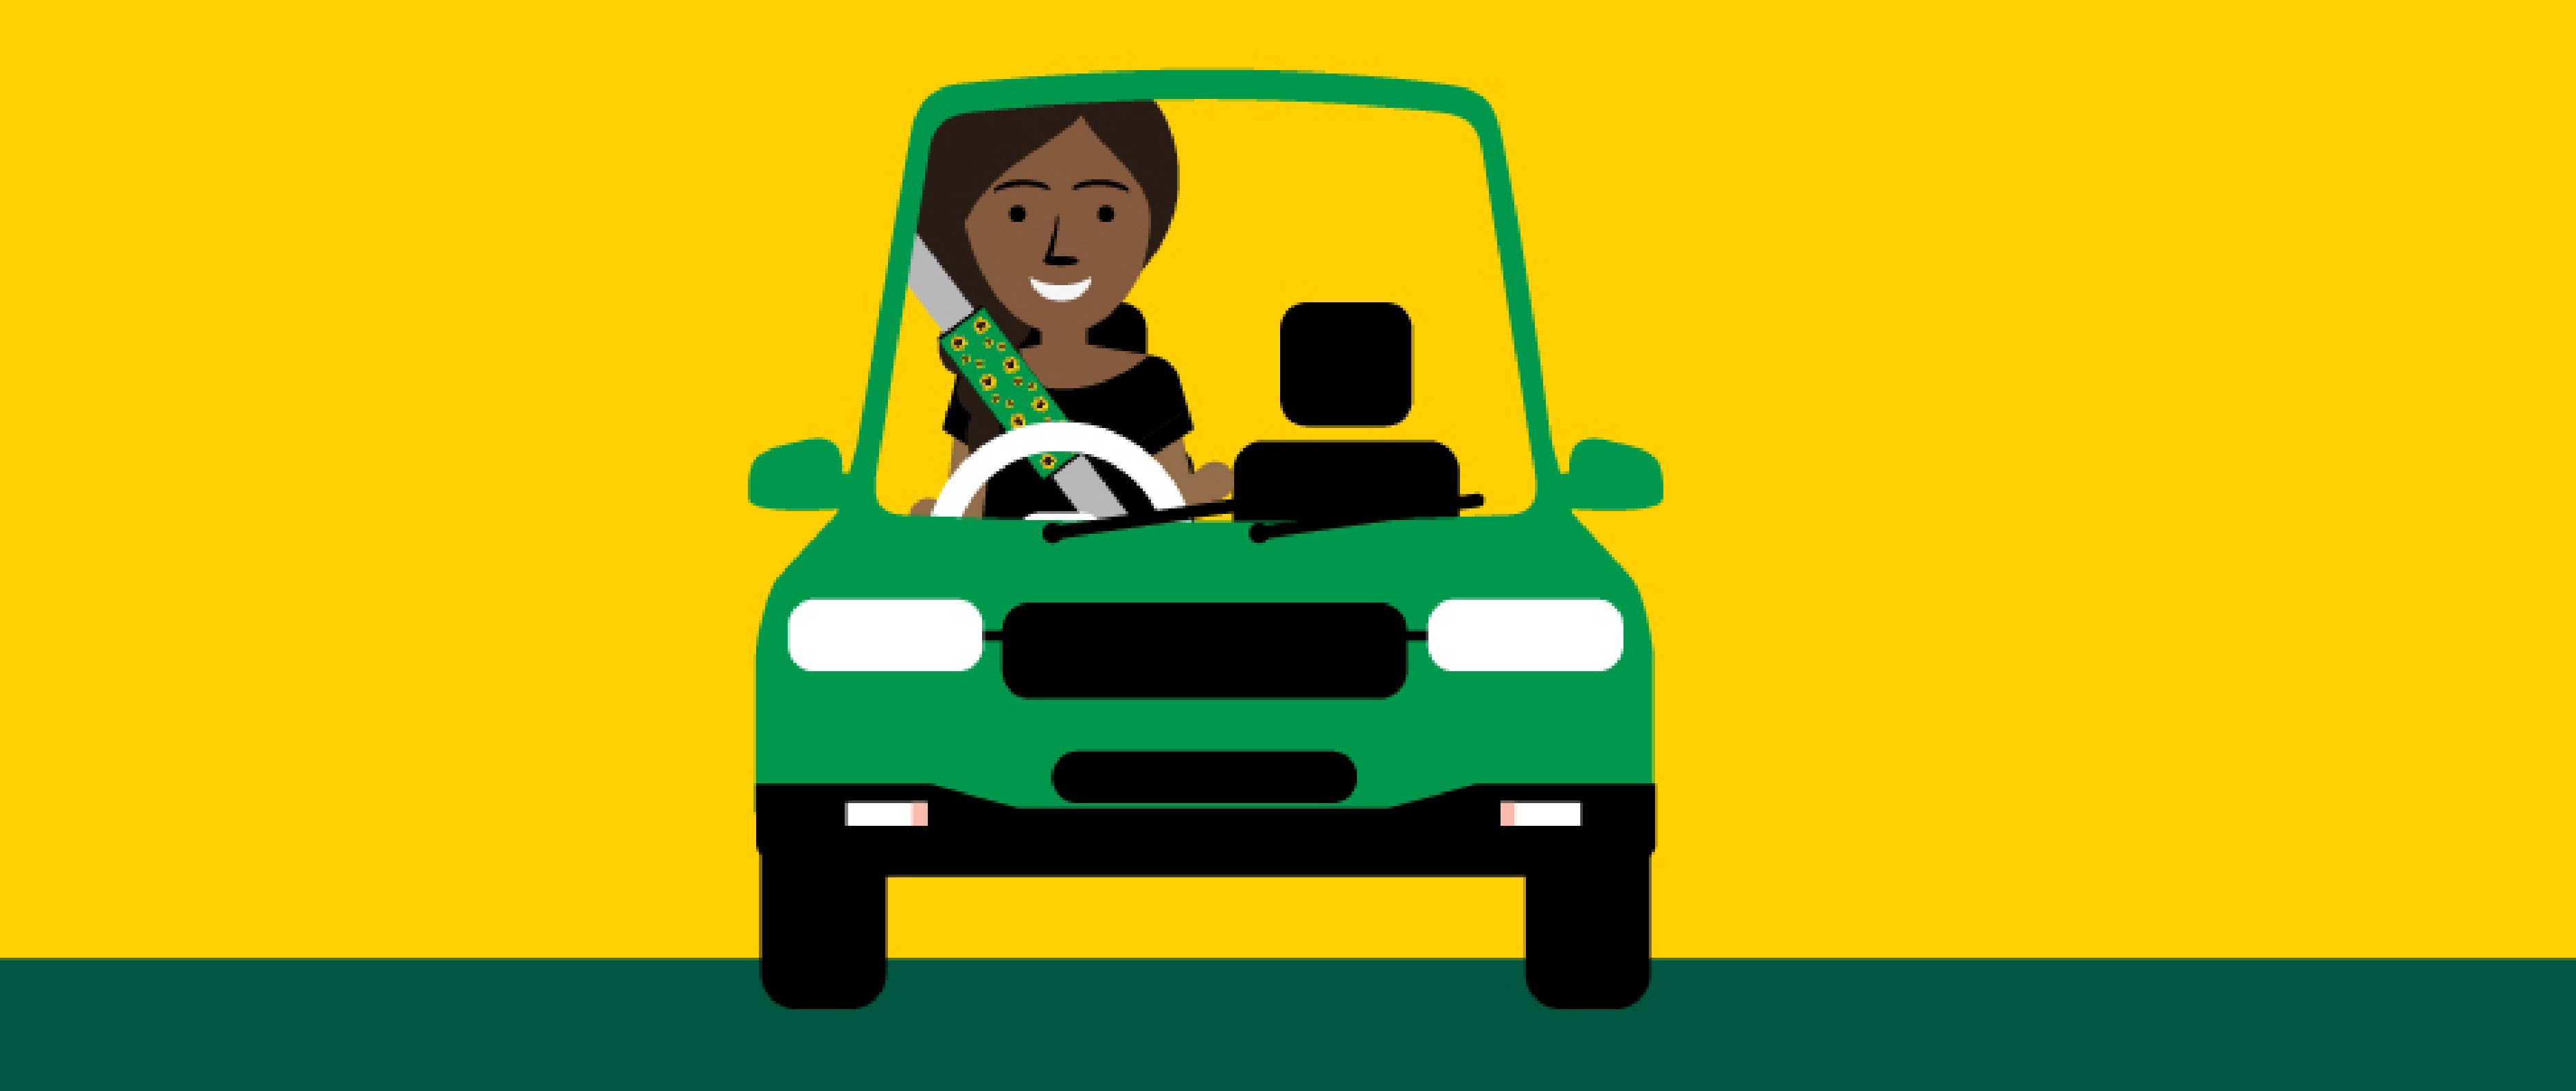 Illustrations of woman icon car wearing a Sunflower seatbelt